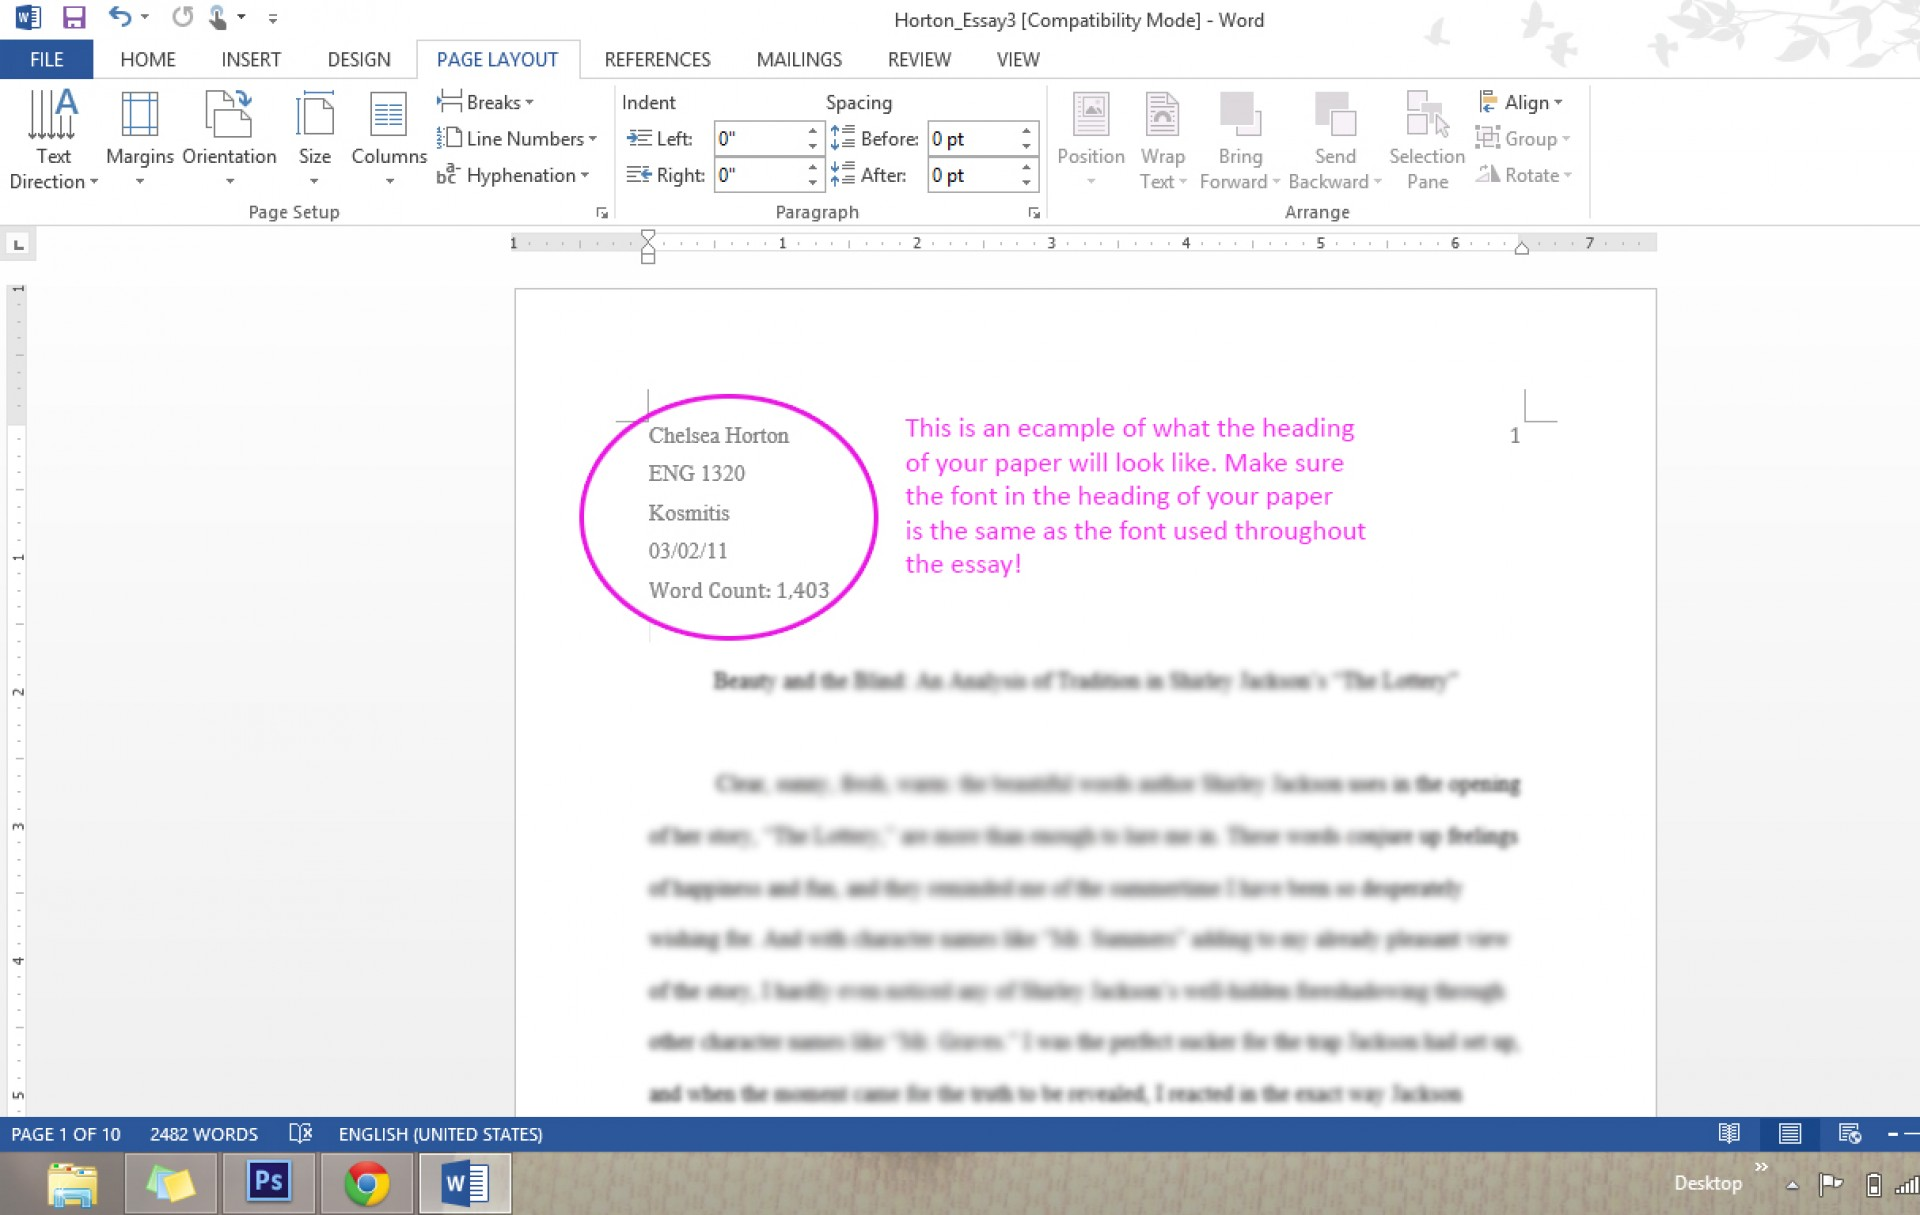 003 Essay Example Word Counter For Essays Incredible Limit College Counts 1920